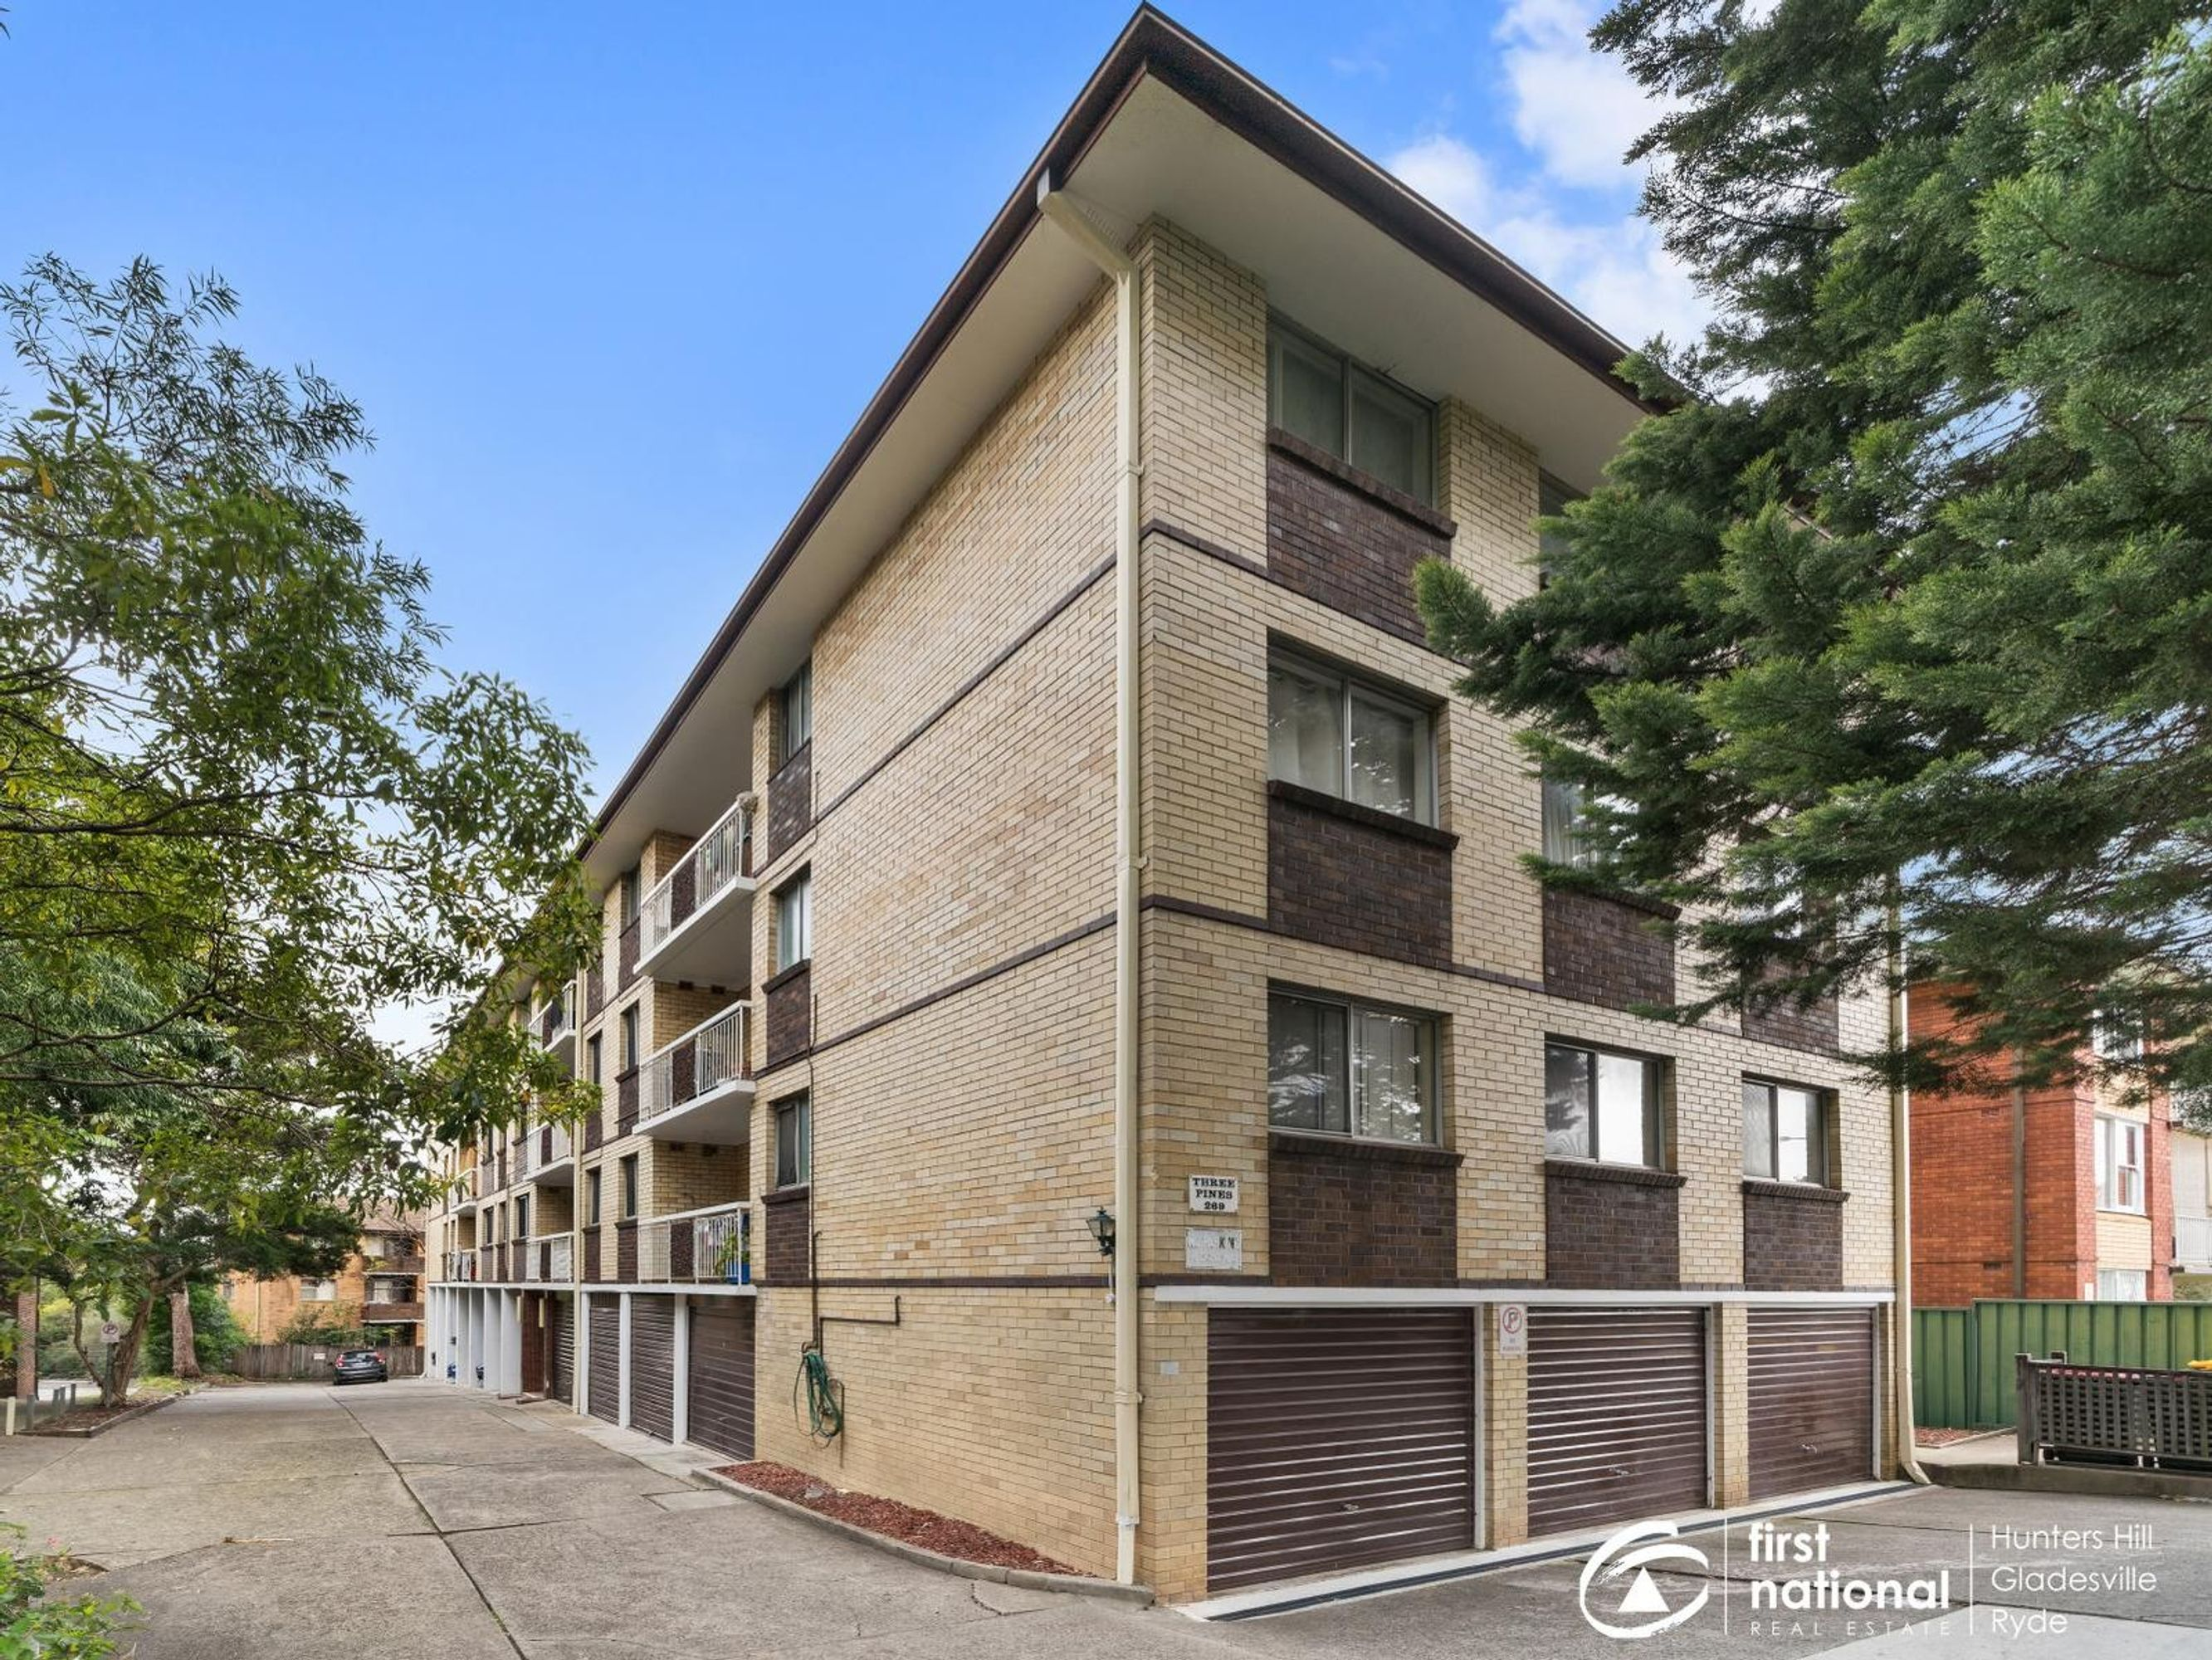 2/269 Blaxland Road, Ryde, NSW 2112